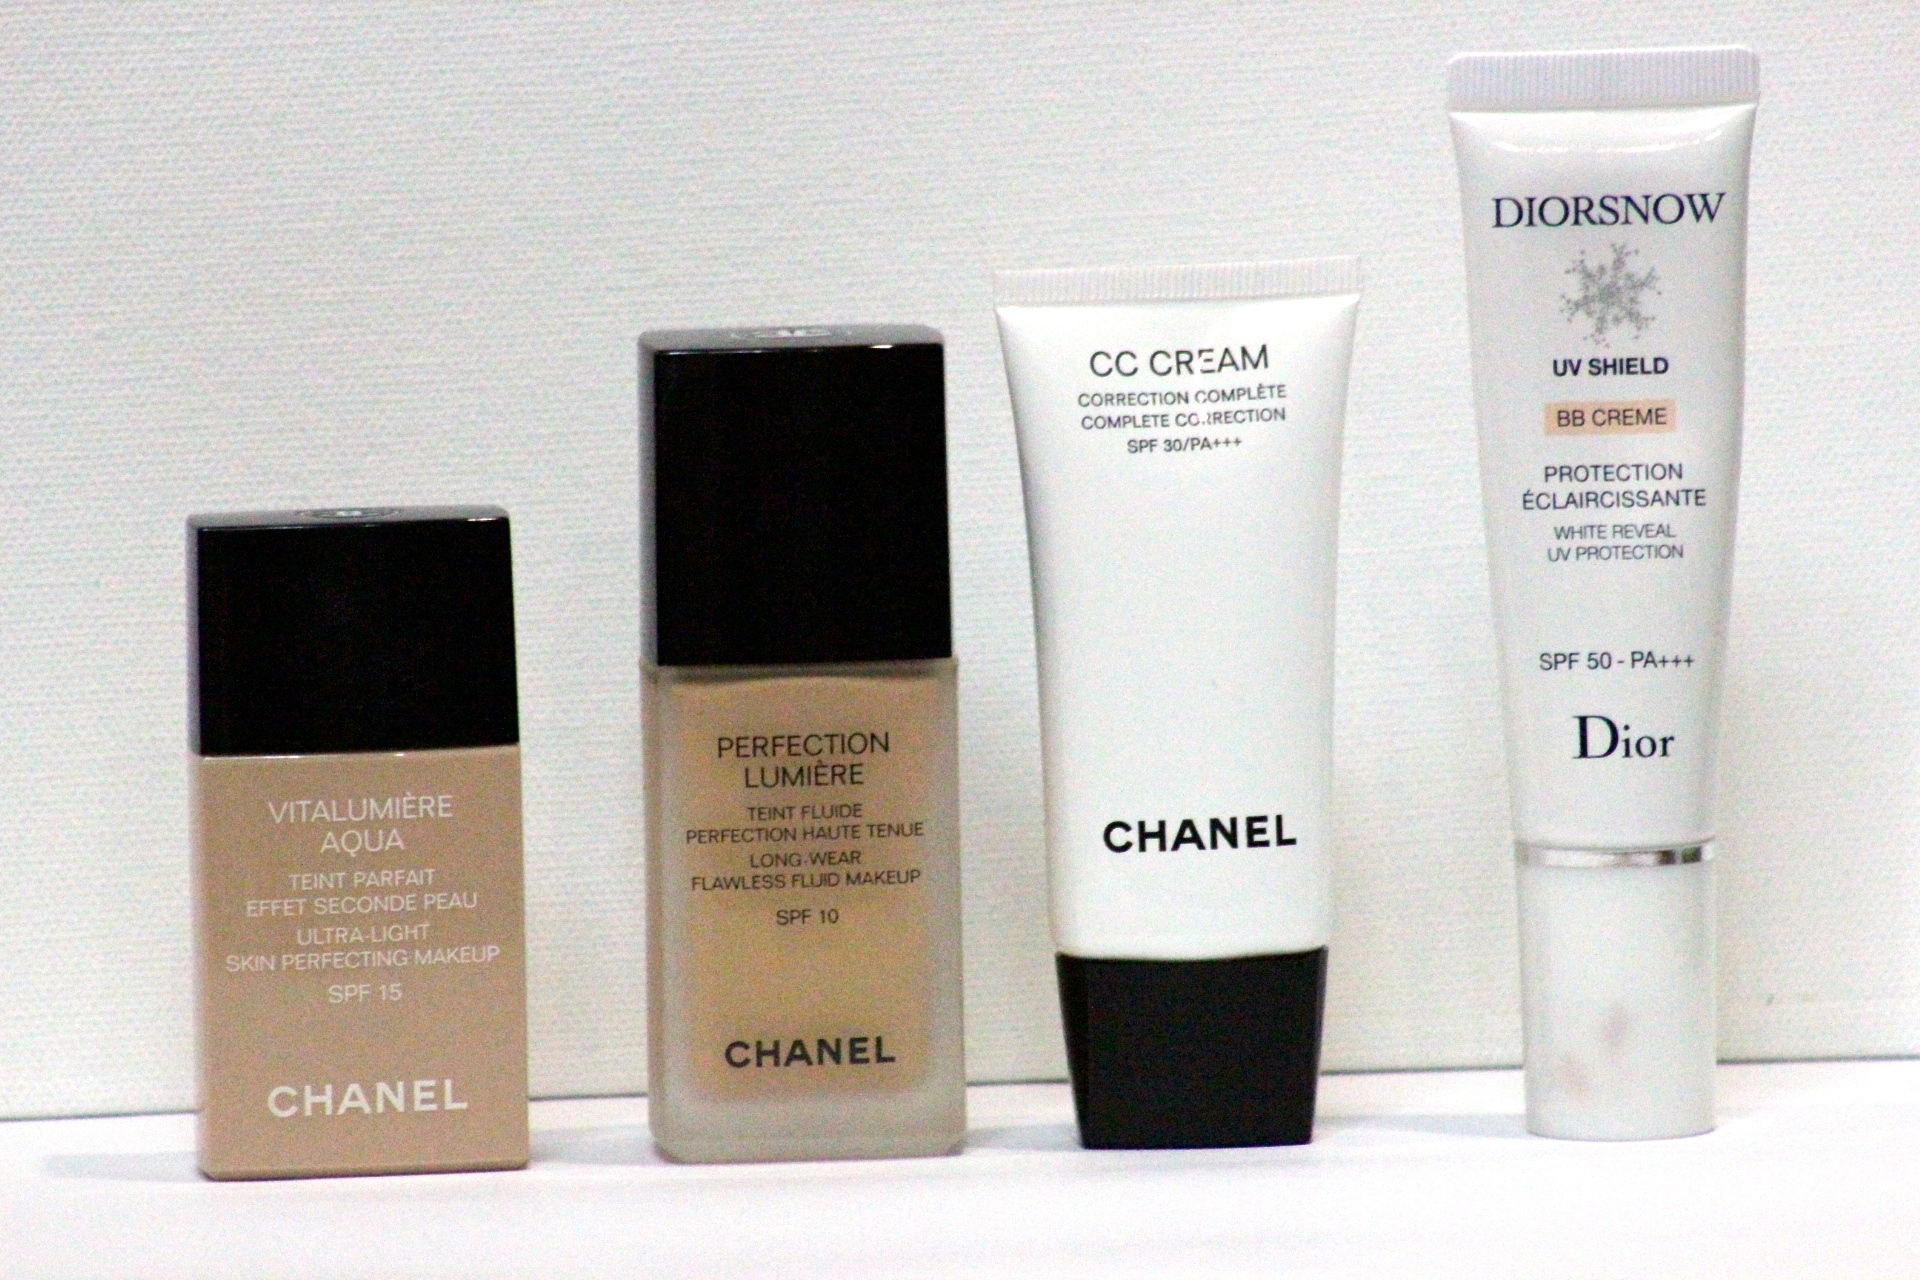 chanel cc cream review comparison fashion enthusiast and beauty junkie. Black Bedroom Furniture Sets. Home Design Ideas